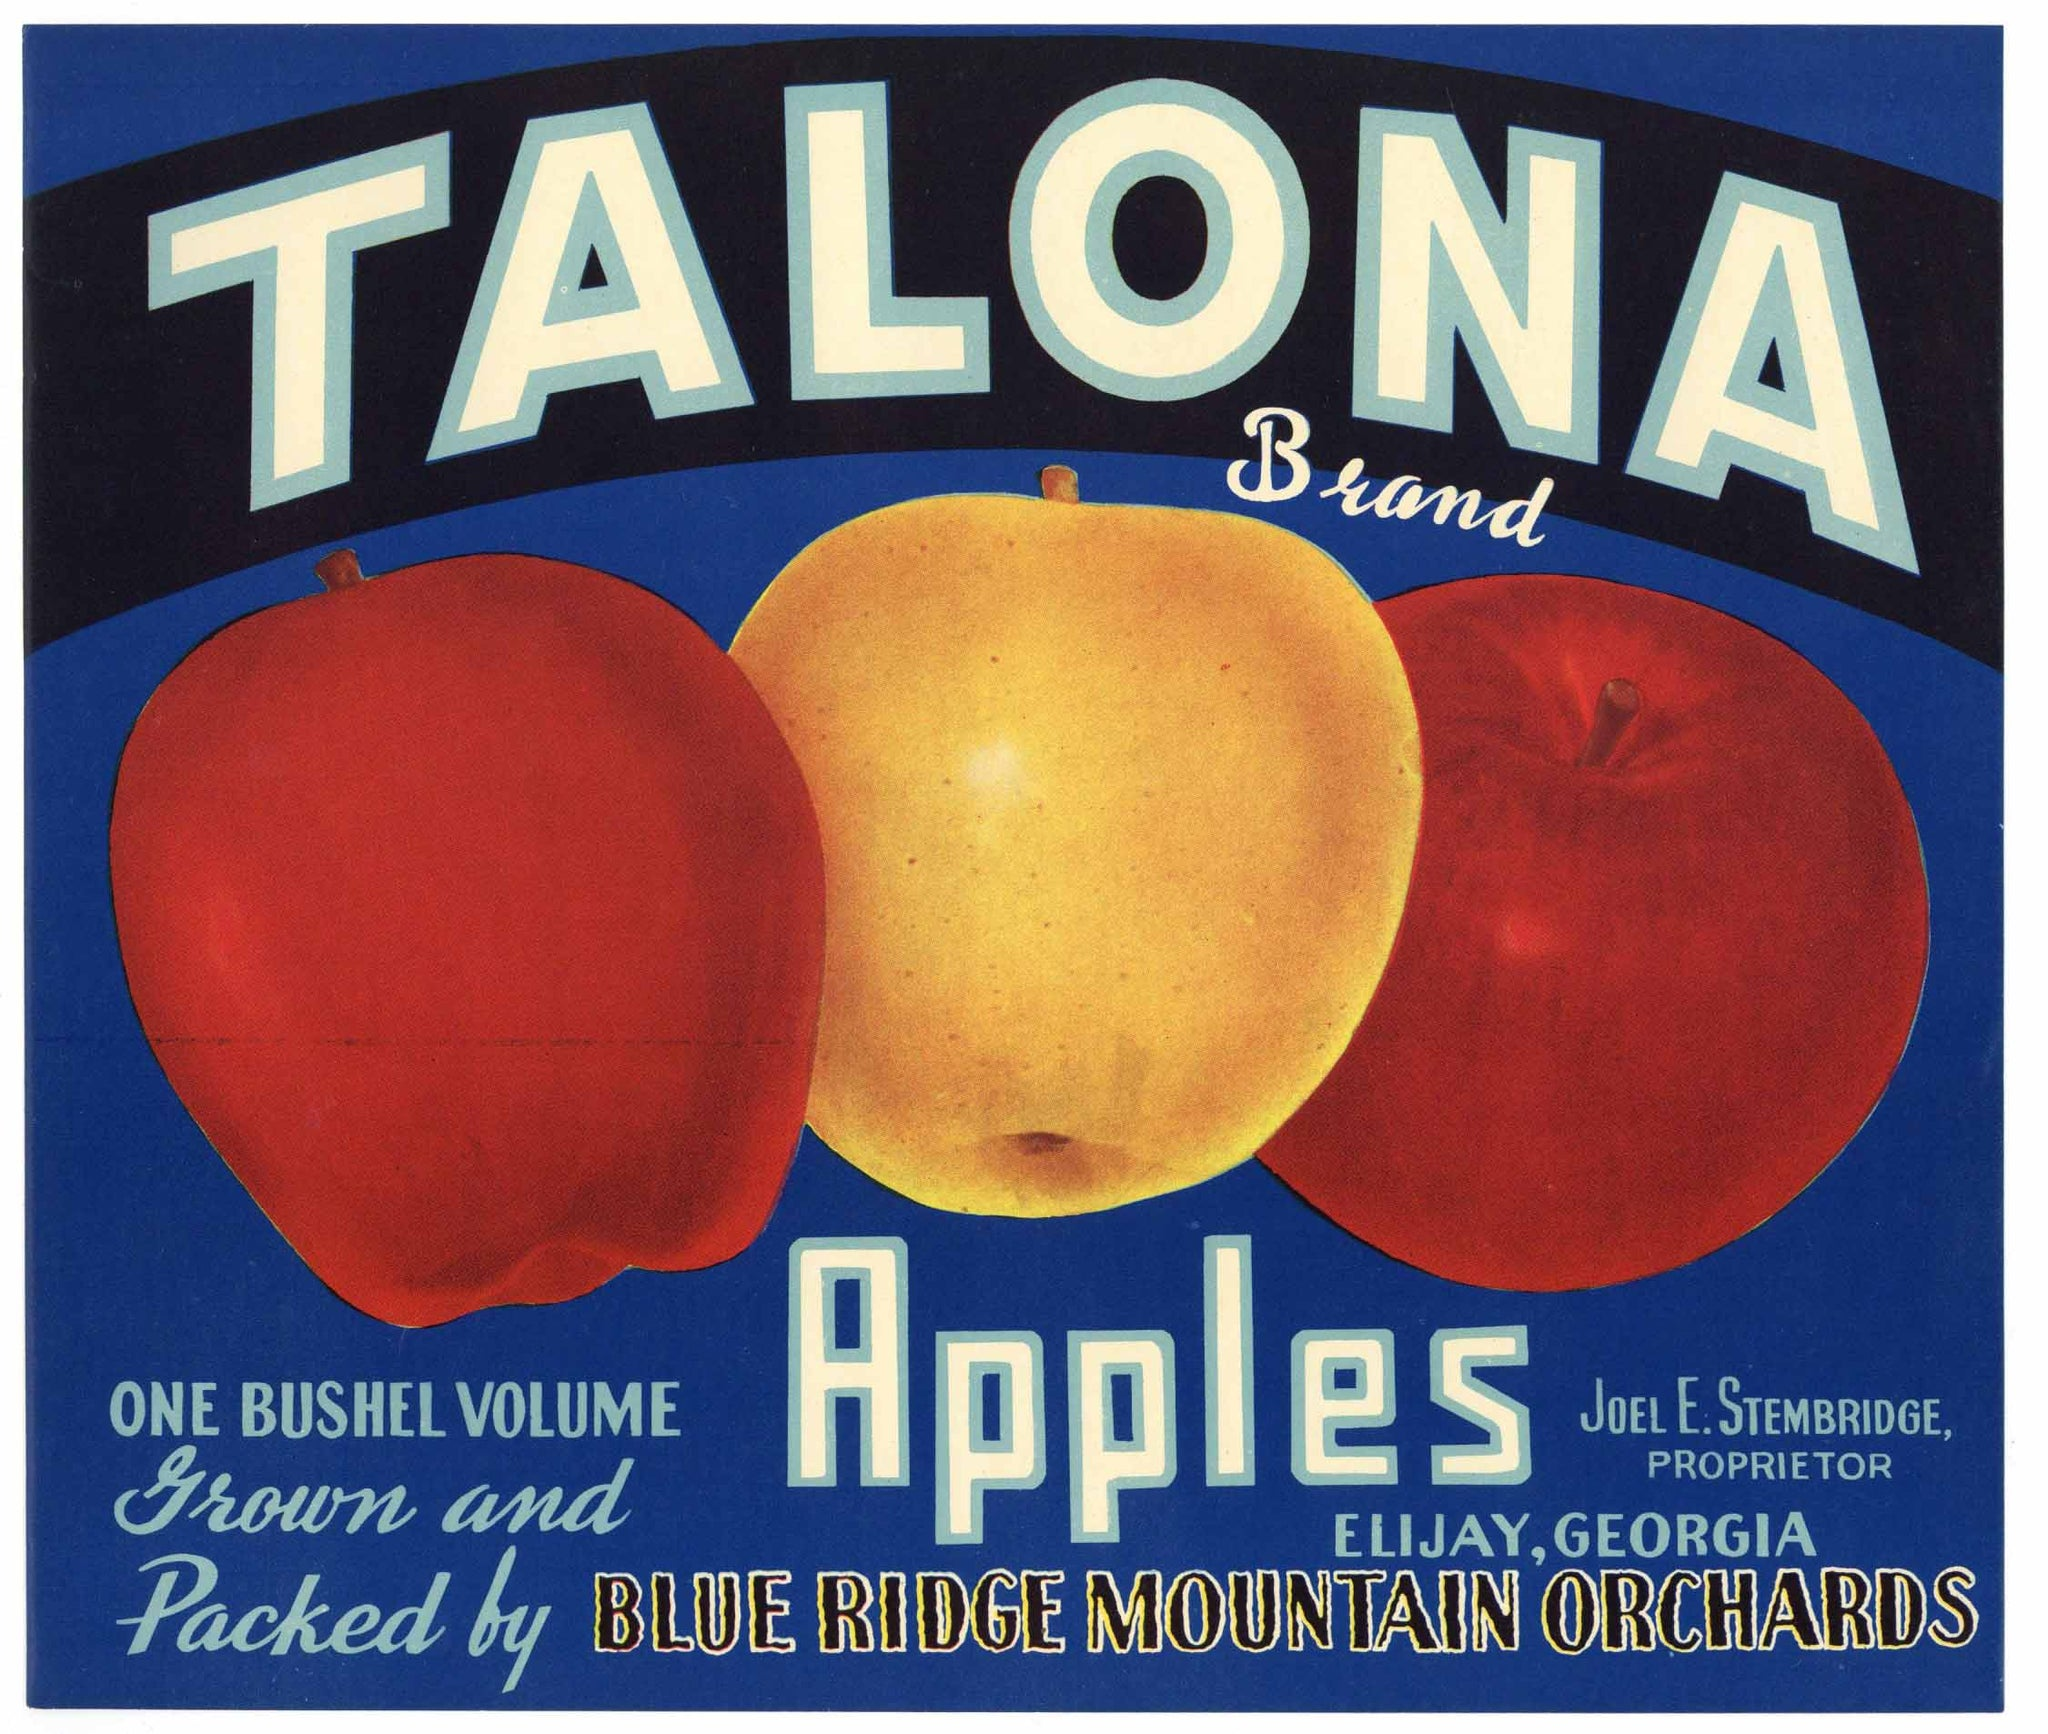 Talona Brand Vintage Elijay Georgia Apple Crate Label